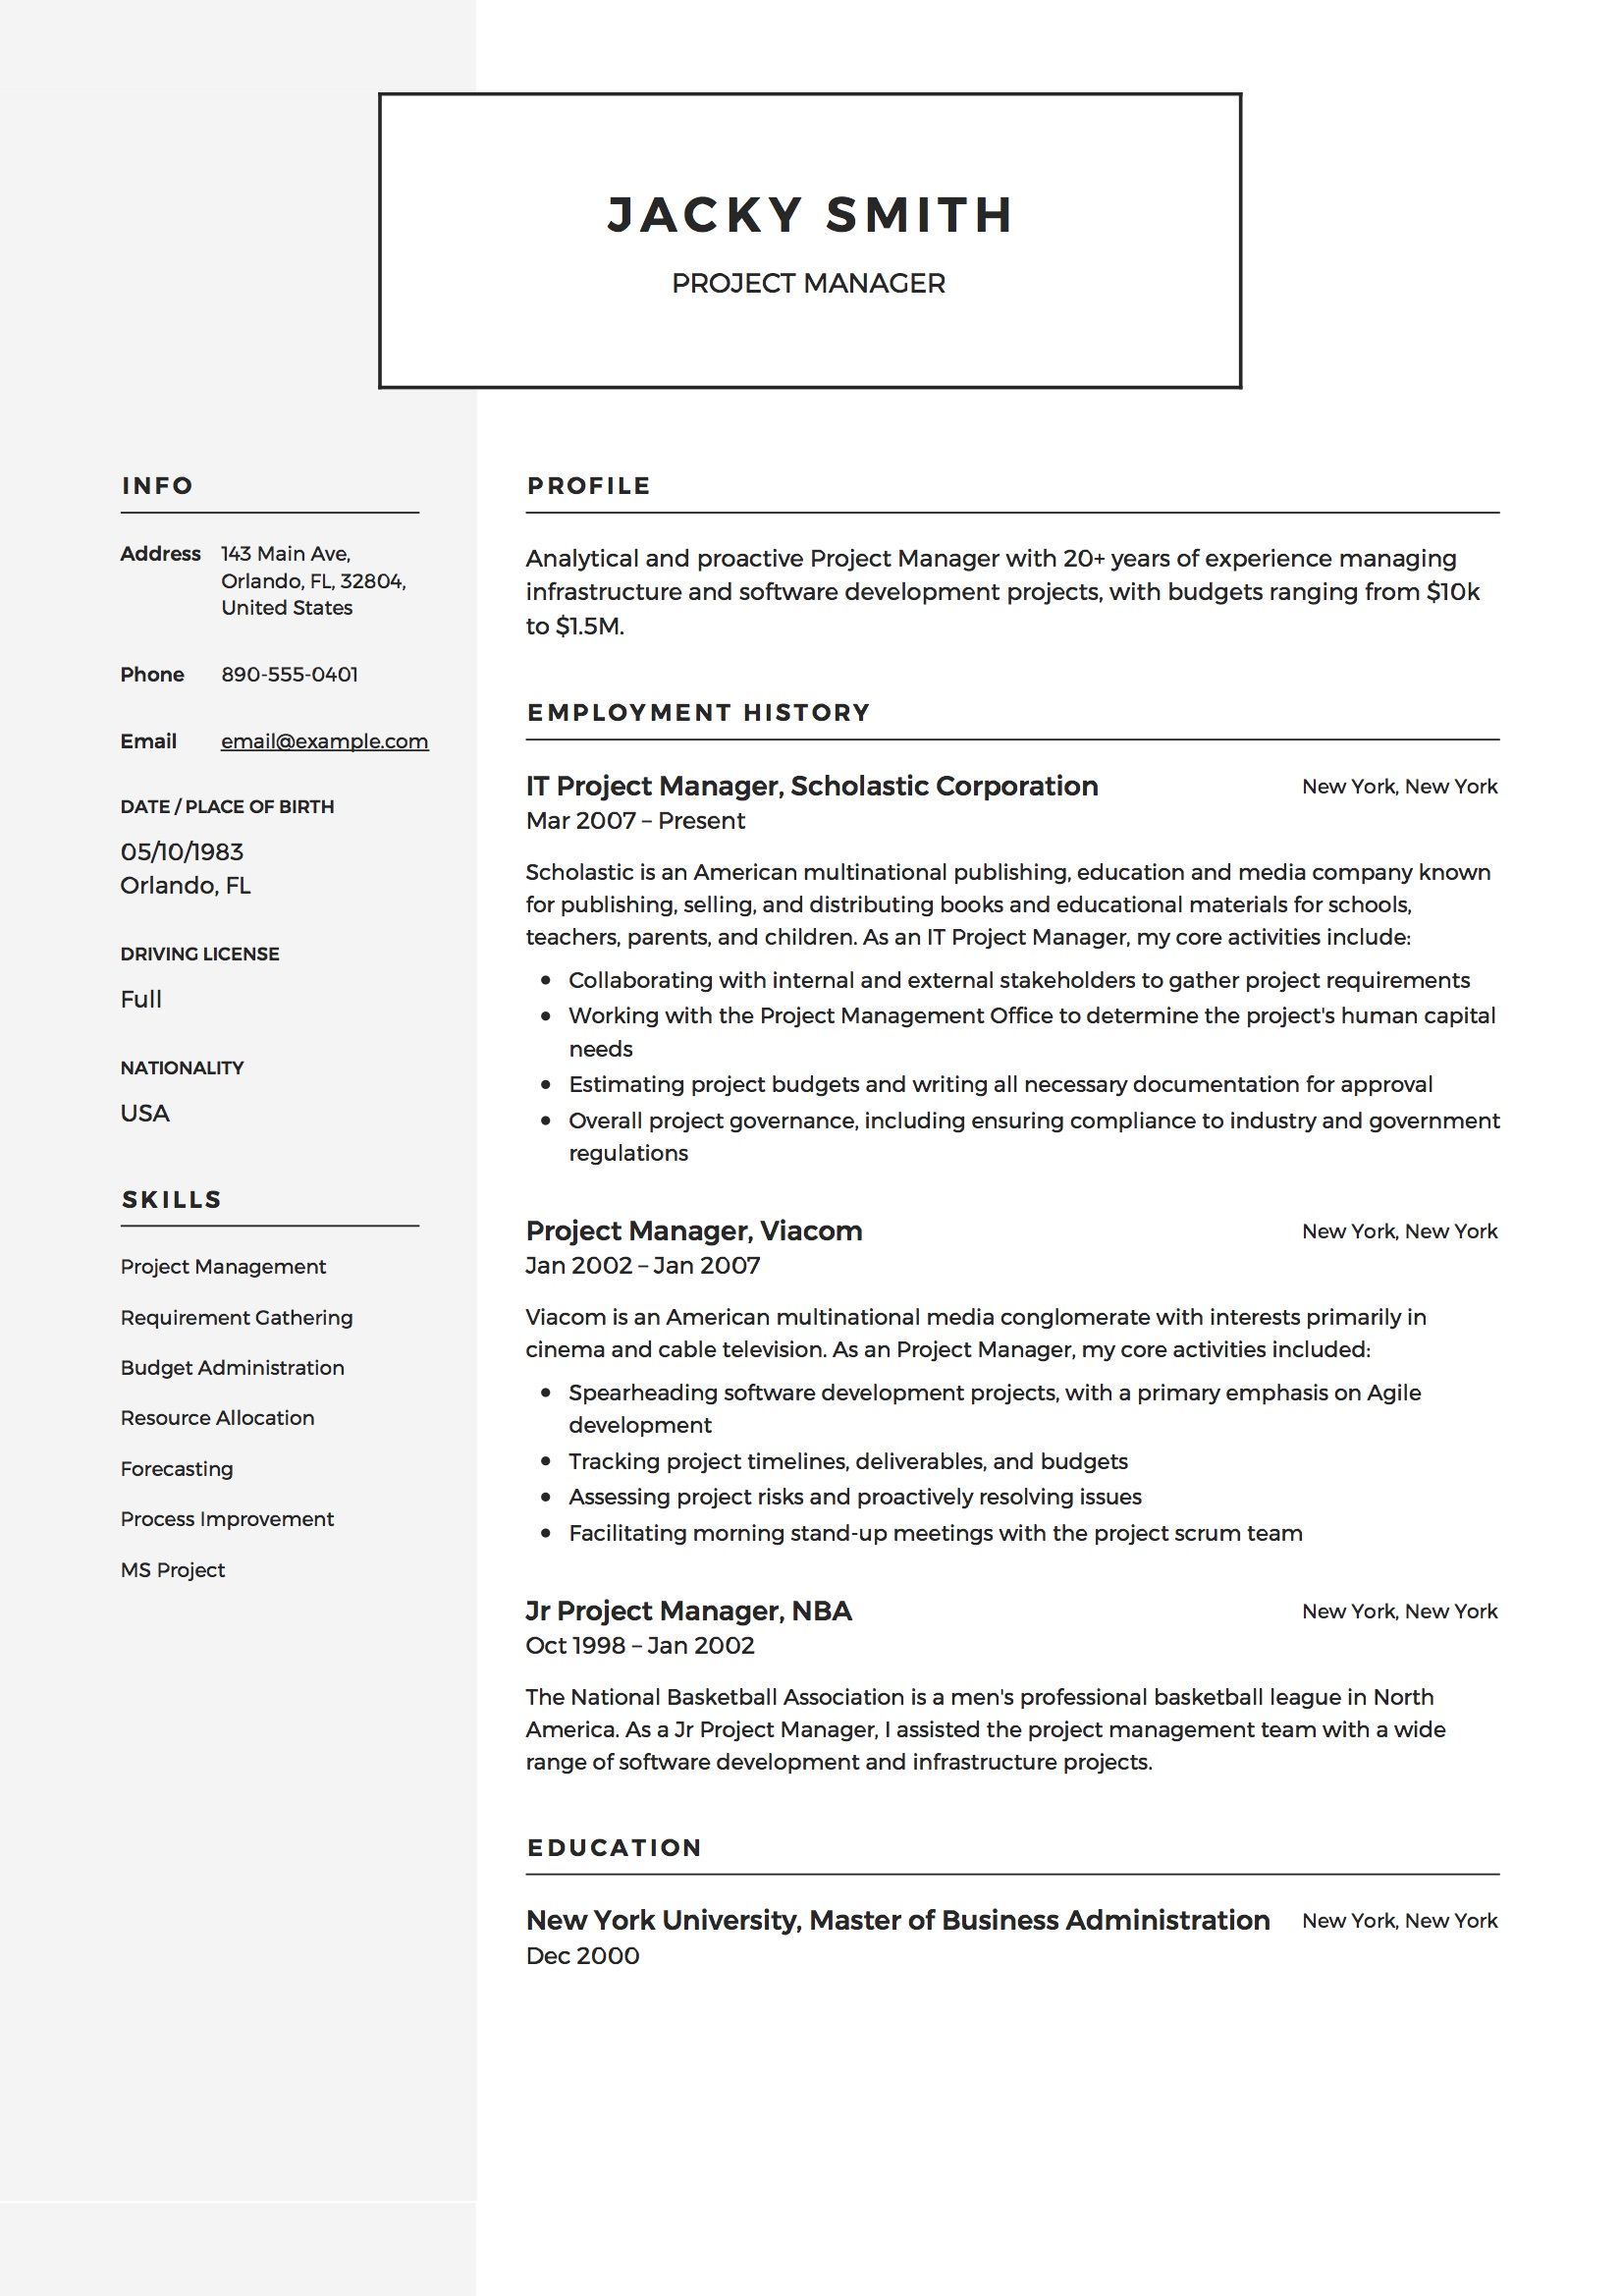 Project Manager Resume Example Project Manager Resume Basic Resume Examples Resume Examples